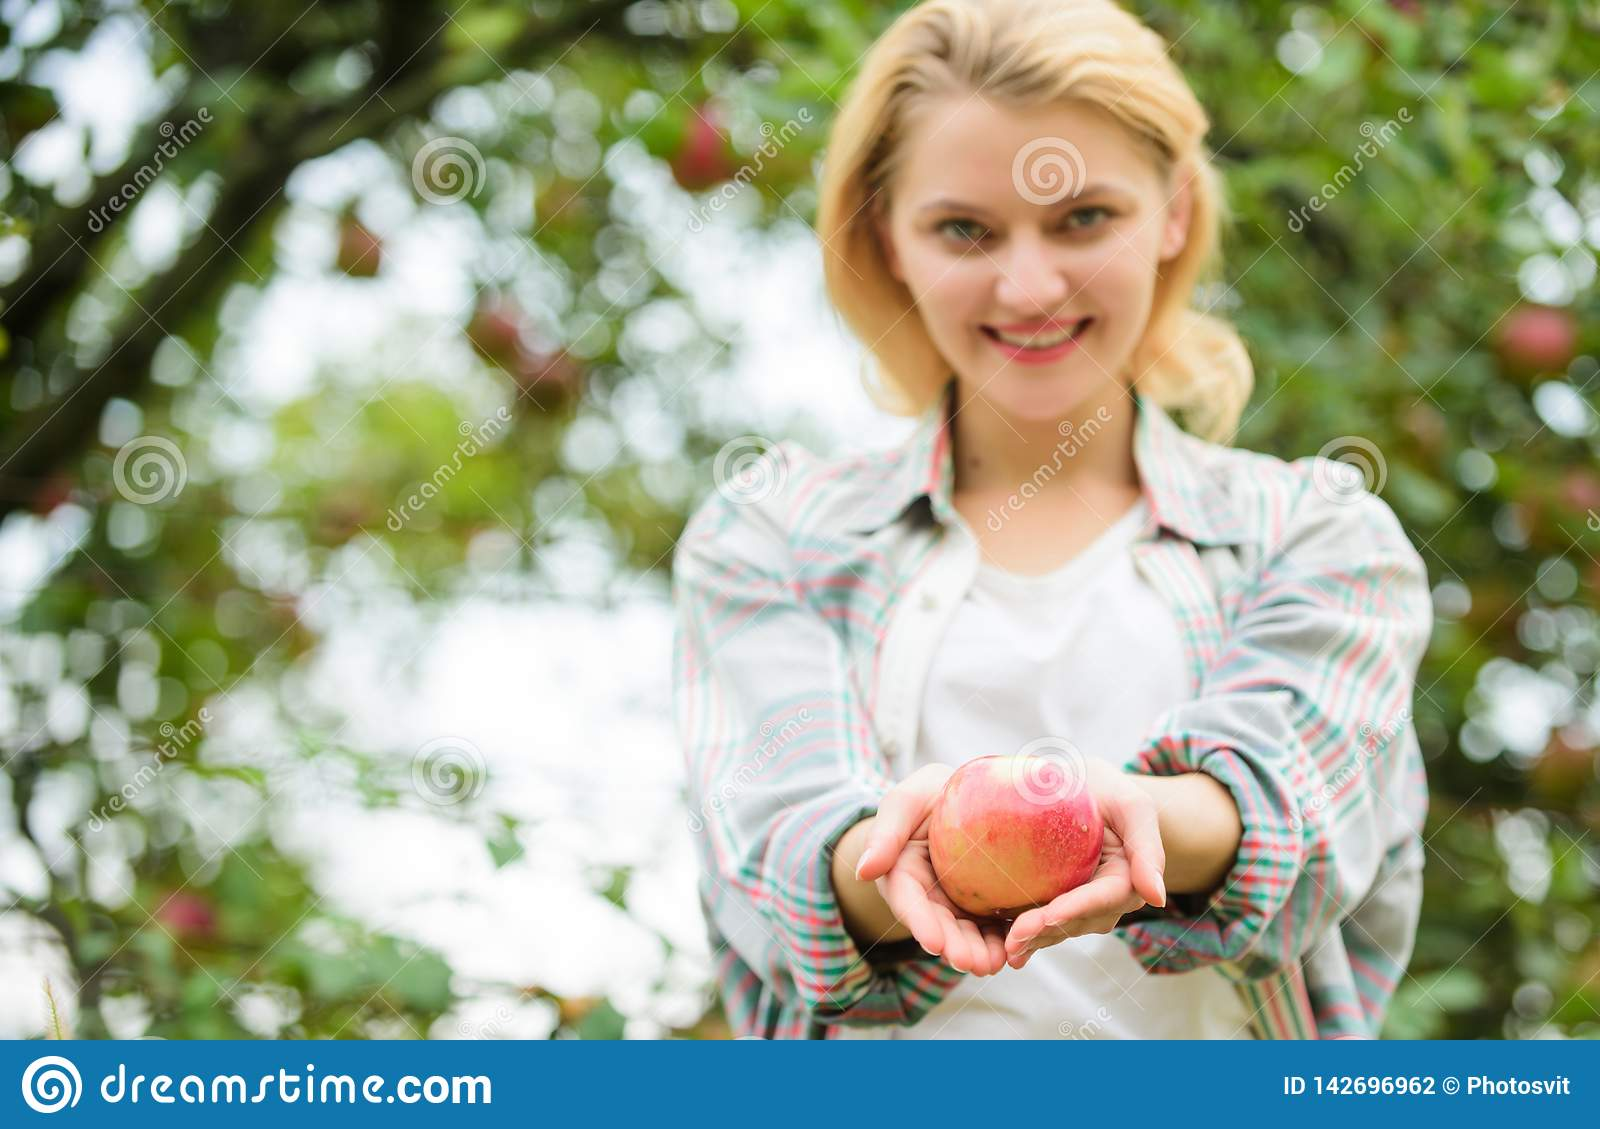 Girl gather apple harvest in own garden. Farmer girl hold apple. Local crops concept. Healthy lifestyle. Eat fruits